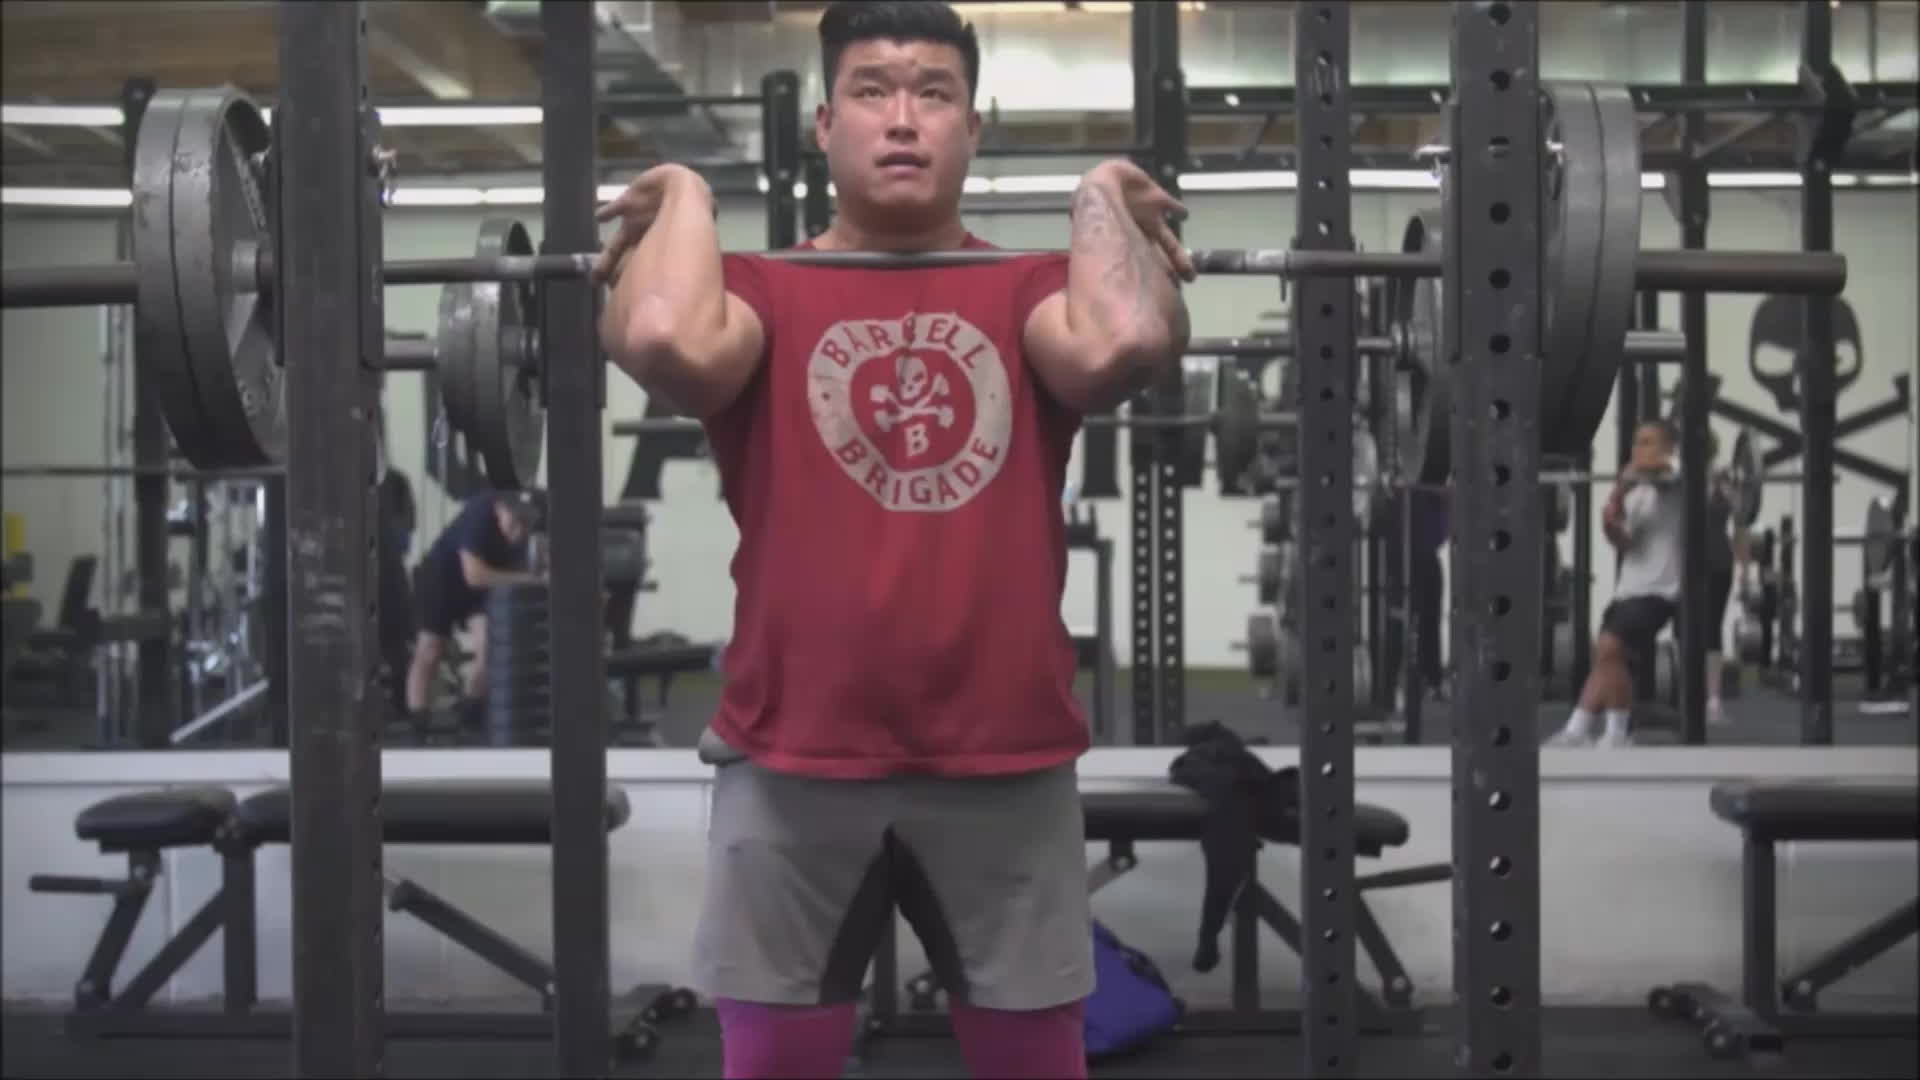 barbellbrigade, bartkwan, oops, ouch, weightlifting, Ouch GIFs